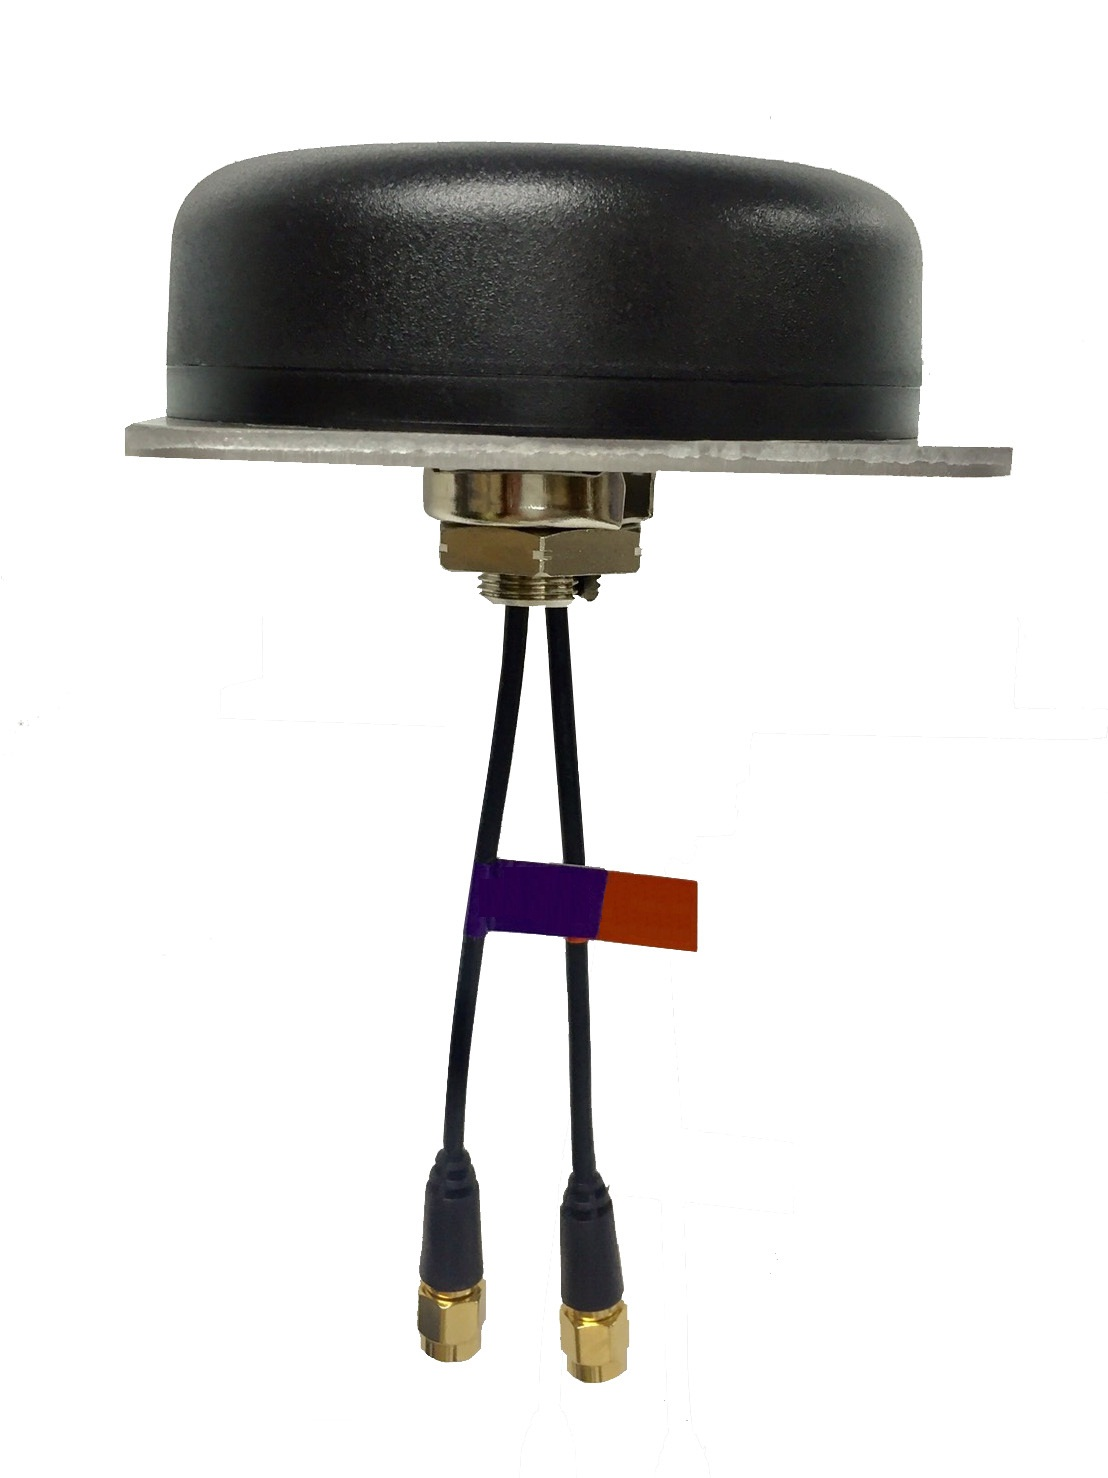 Bus Combined Antenna for Body Parts made by Chinmore Industry Co., LTD. 竣茂工業有限公司 - MatchSupplier.com